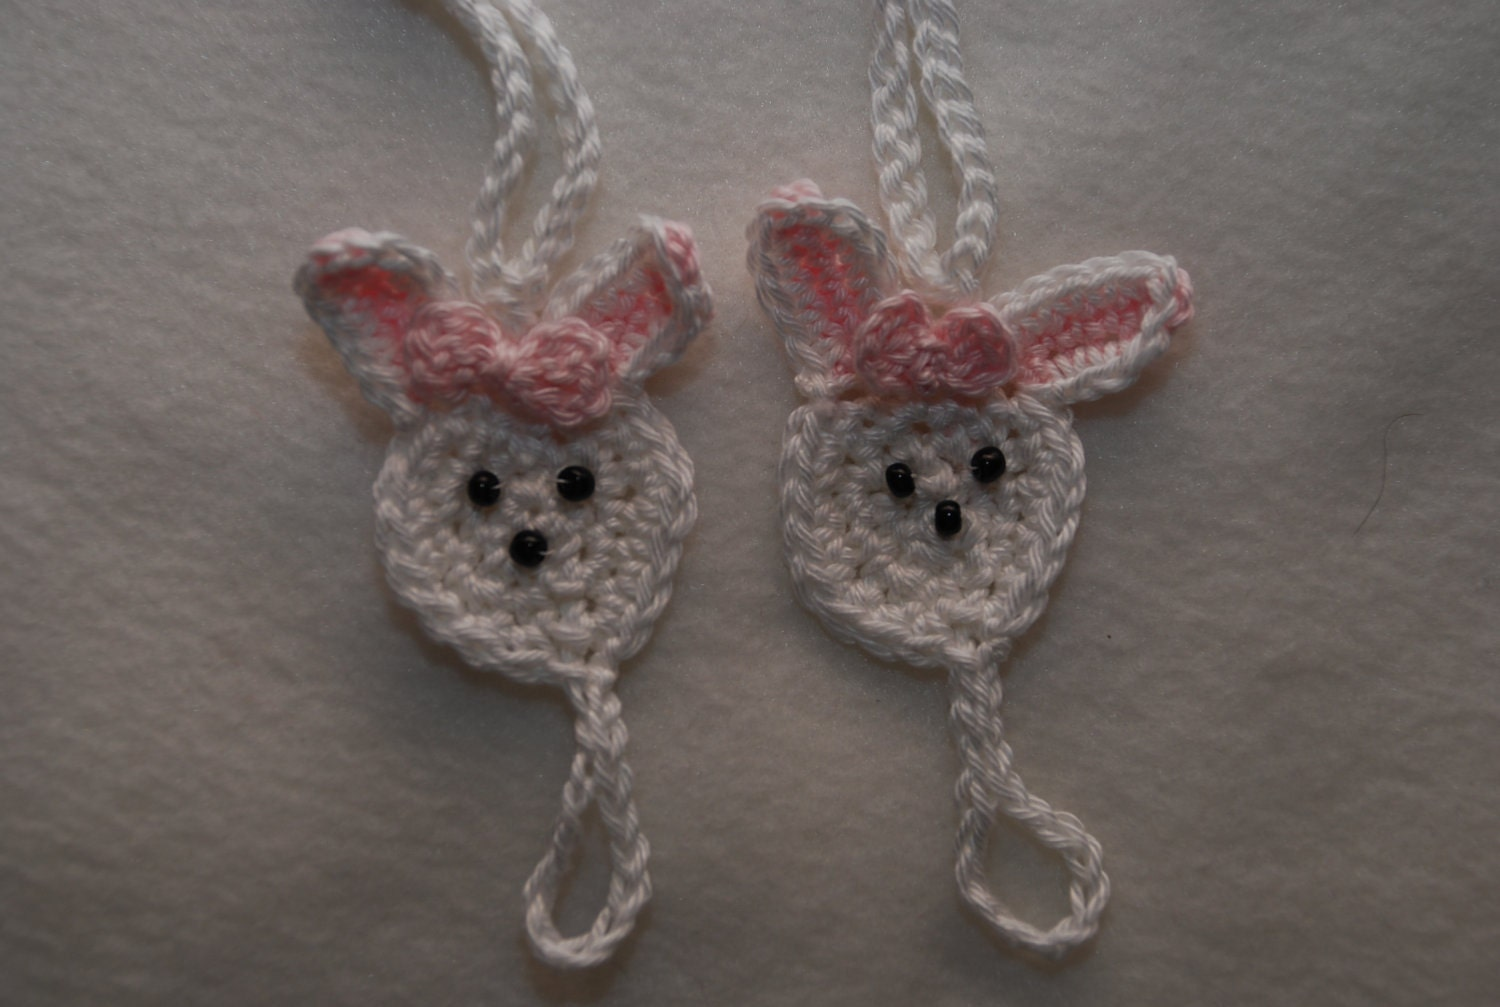 Crochet Pattern For Baby Barefoot Sandals : Crochet Pattern Bunny Barefoot Sandals by Nogginsandnapes ...